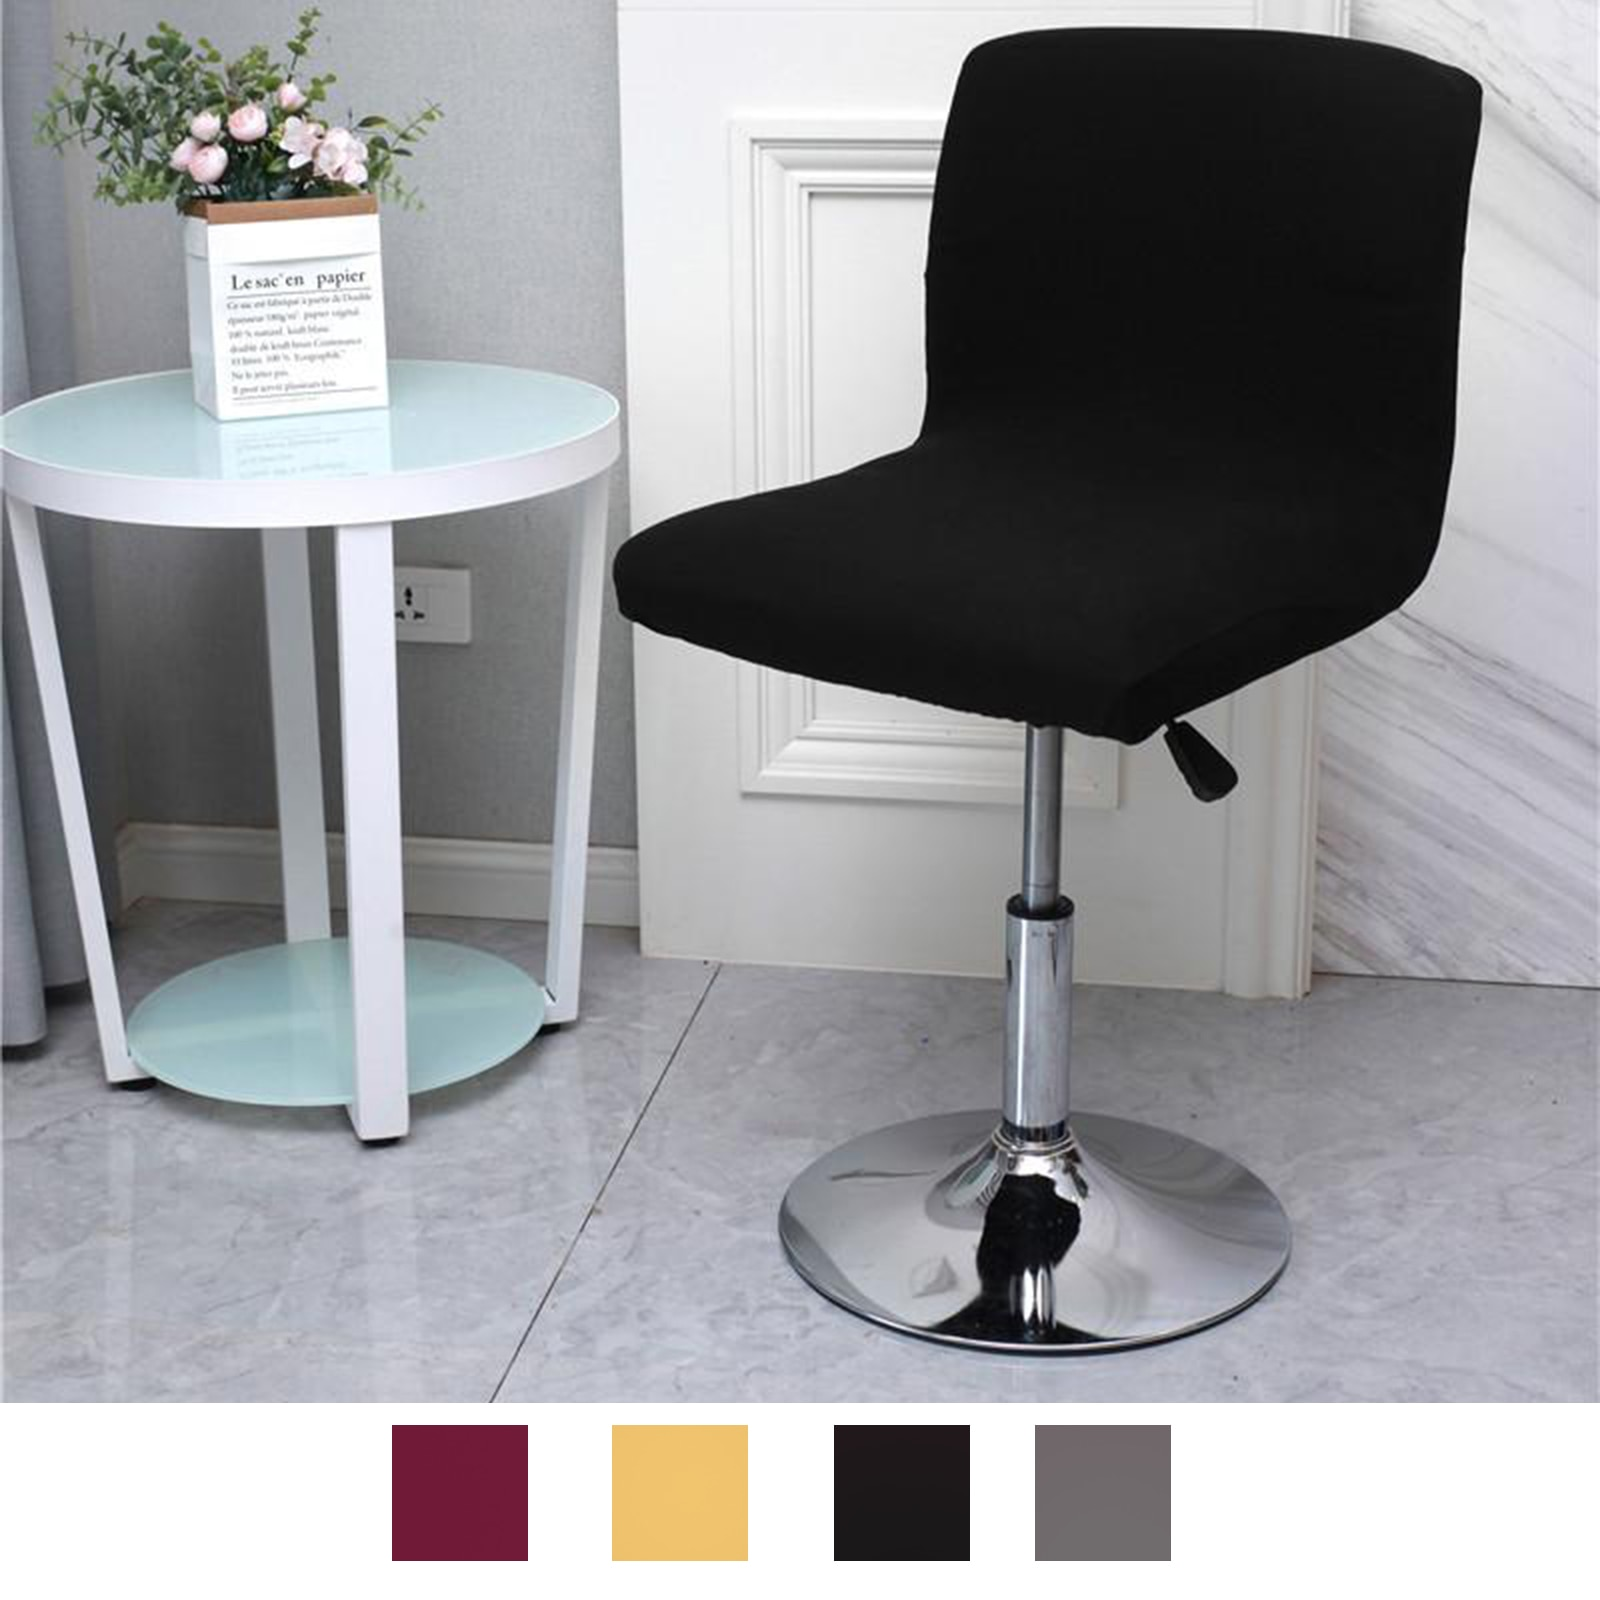 AliExpress - 1x Counter Pub Stool Chair Cover Polyester Counter Side Short Back Kitchen Seat Slipcovers Bar Stool Chair Furniture Protector